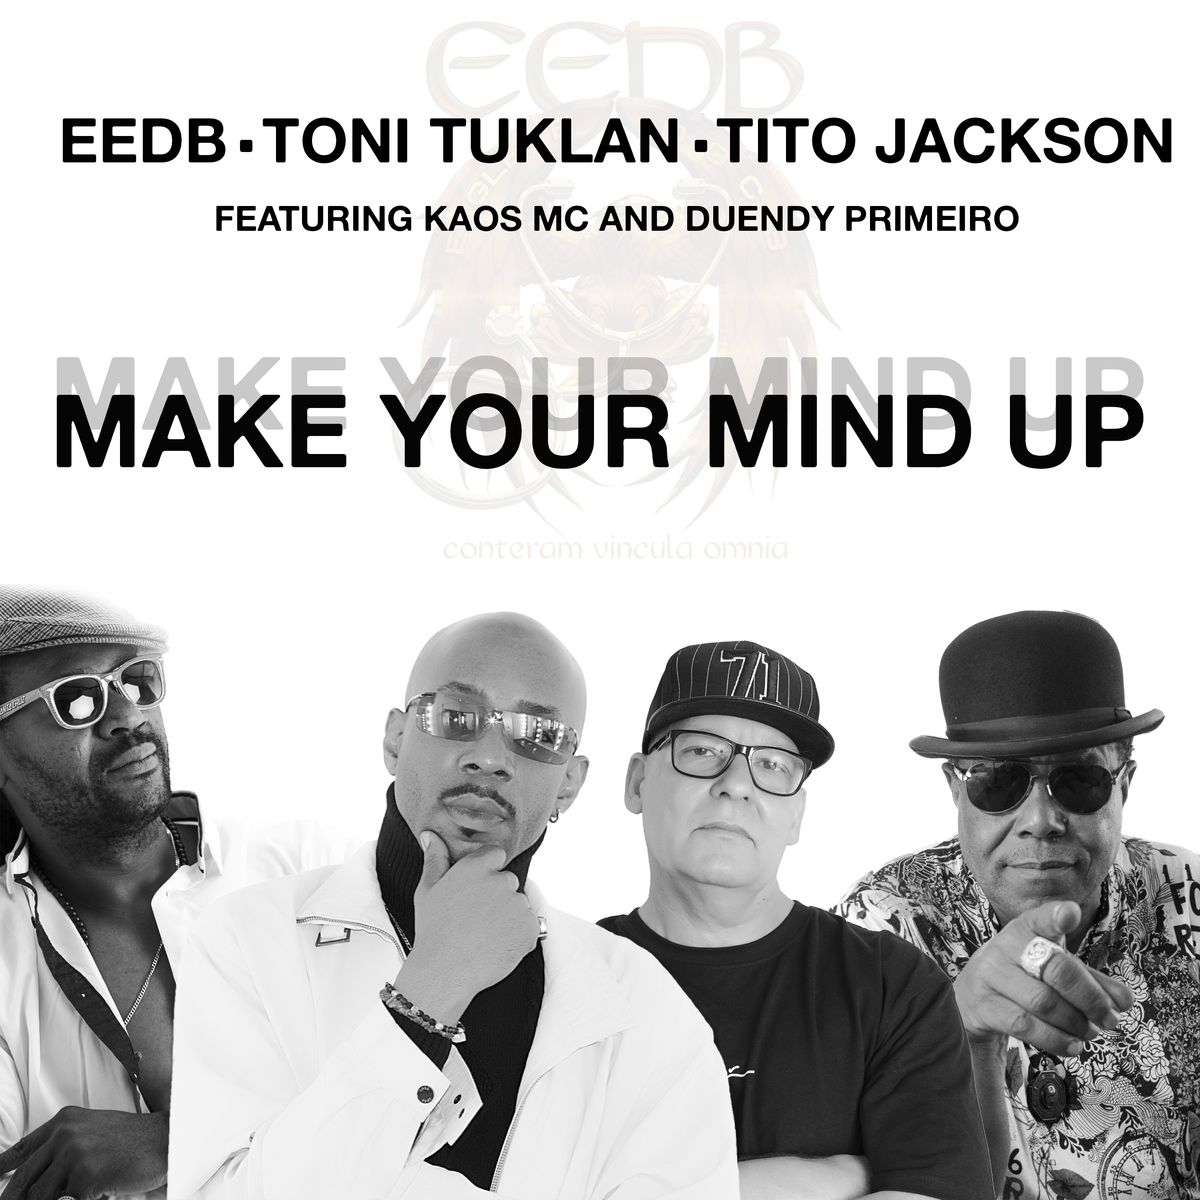 Make Your Mind Up – EEDB, Toni Tuklan, Tito Jackson. feat Kaos Mc And Duendy Primeiro